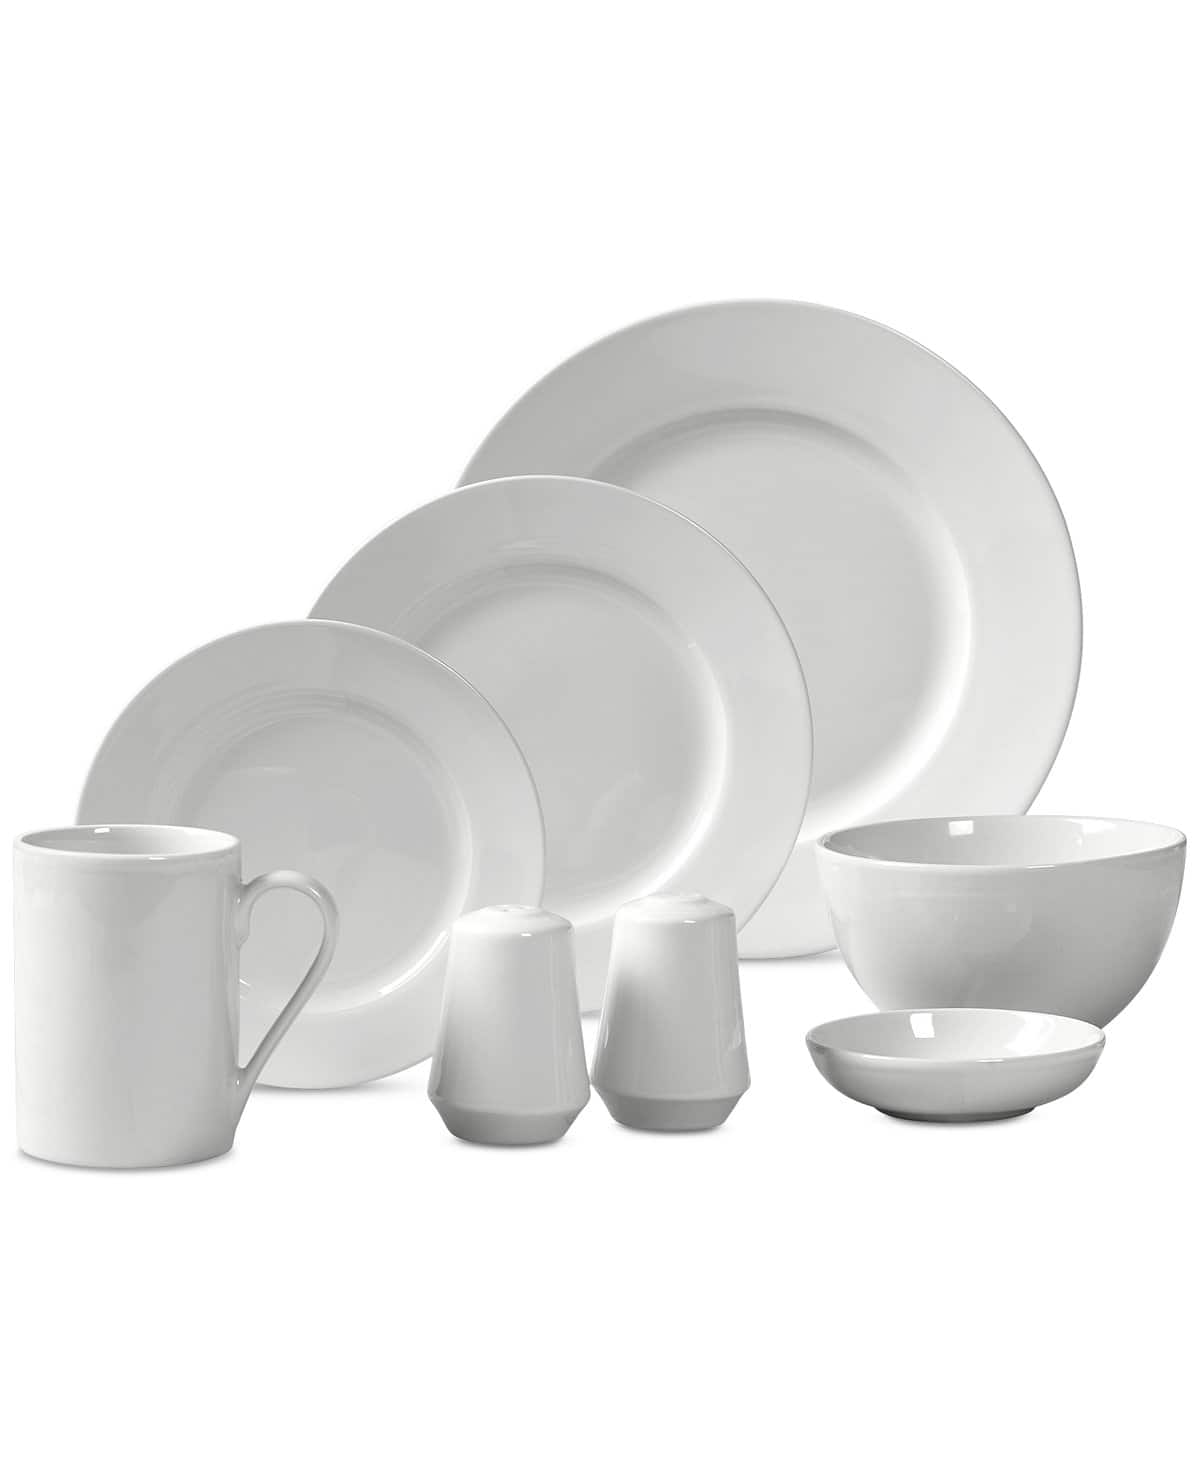 50-Piece Tabletops Unlimited Luna Round Dinnerware Set $33.50 shipped, or 2x 50-Pc Sets $60 shipped